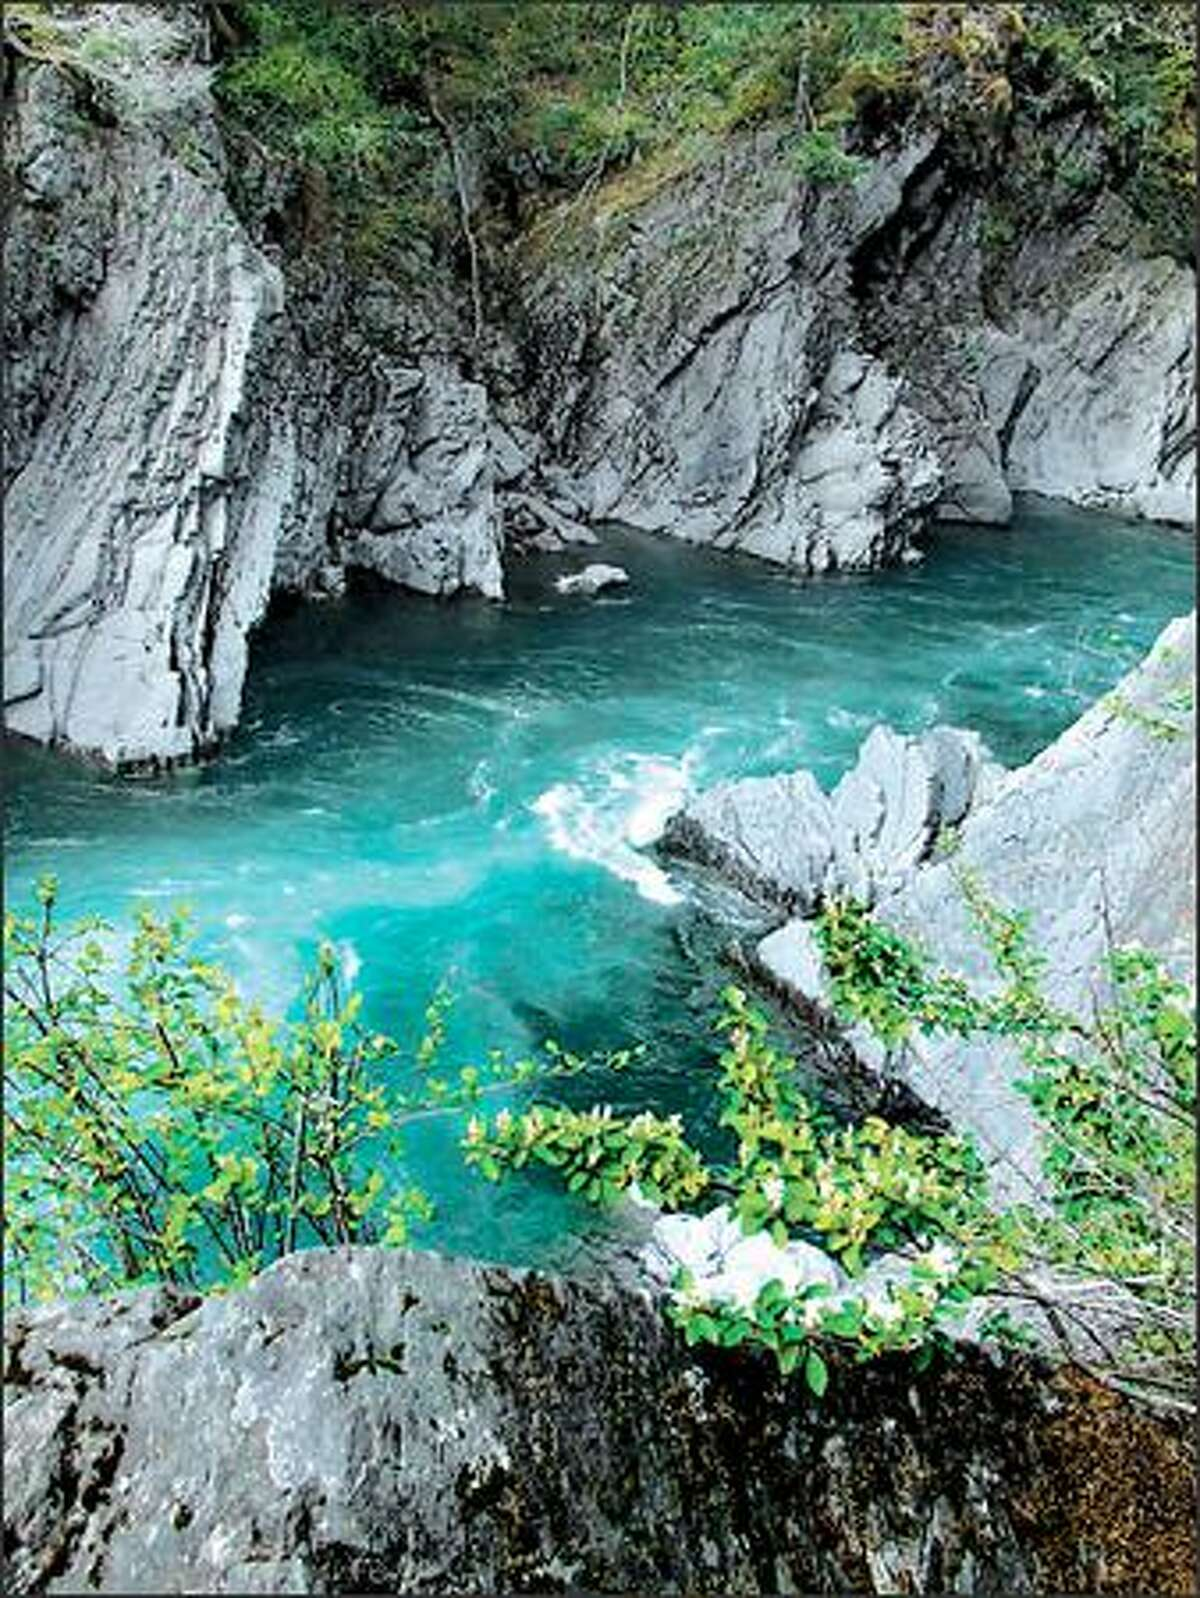 At Goblin Gates, the Elwha River flows beside a cliff and abruptly fills a deep basin where the water whirls furiously.